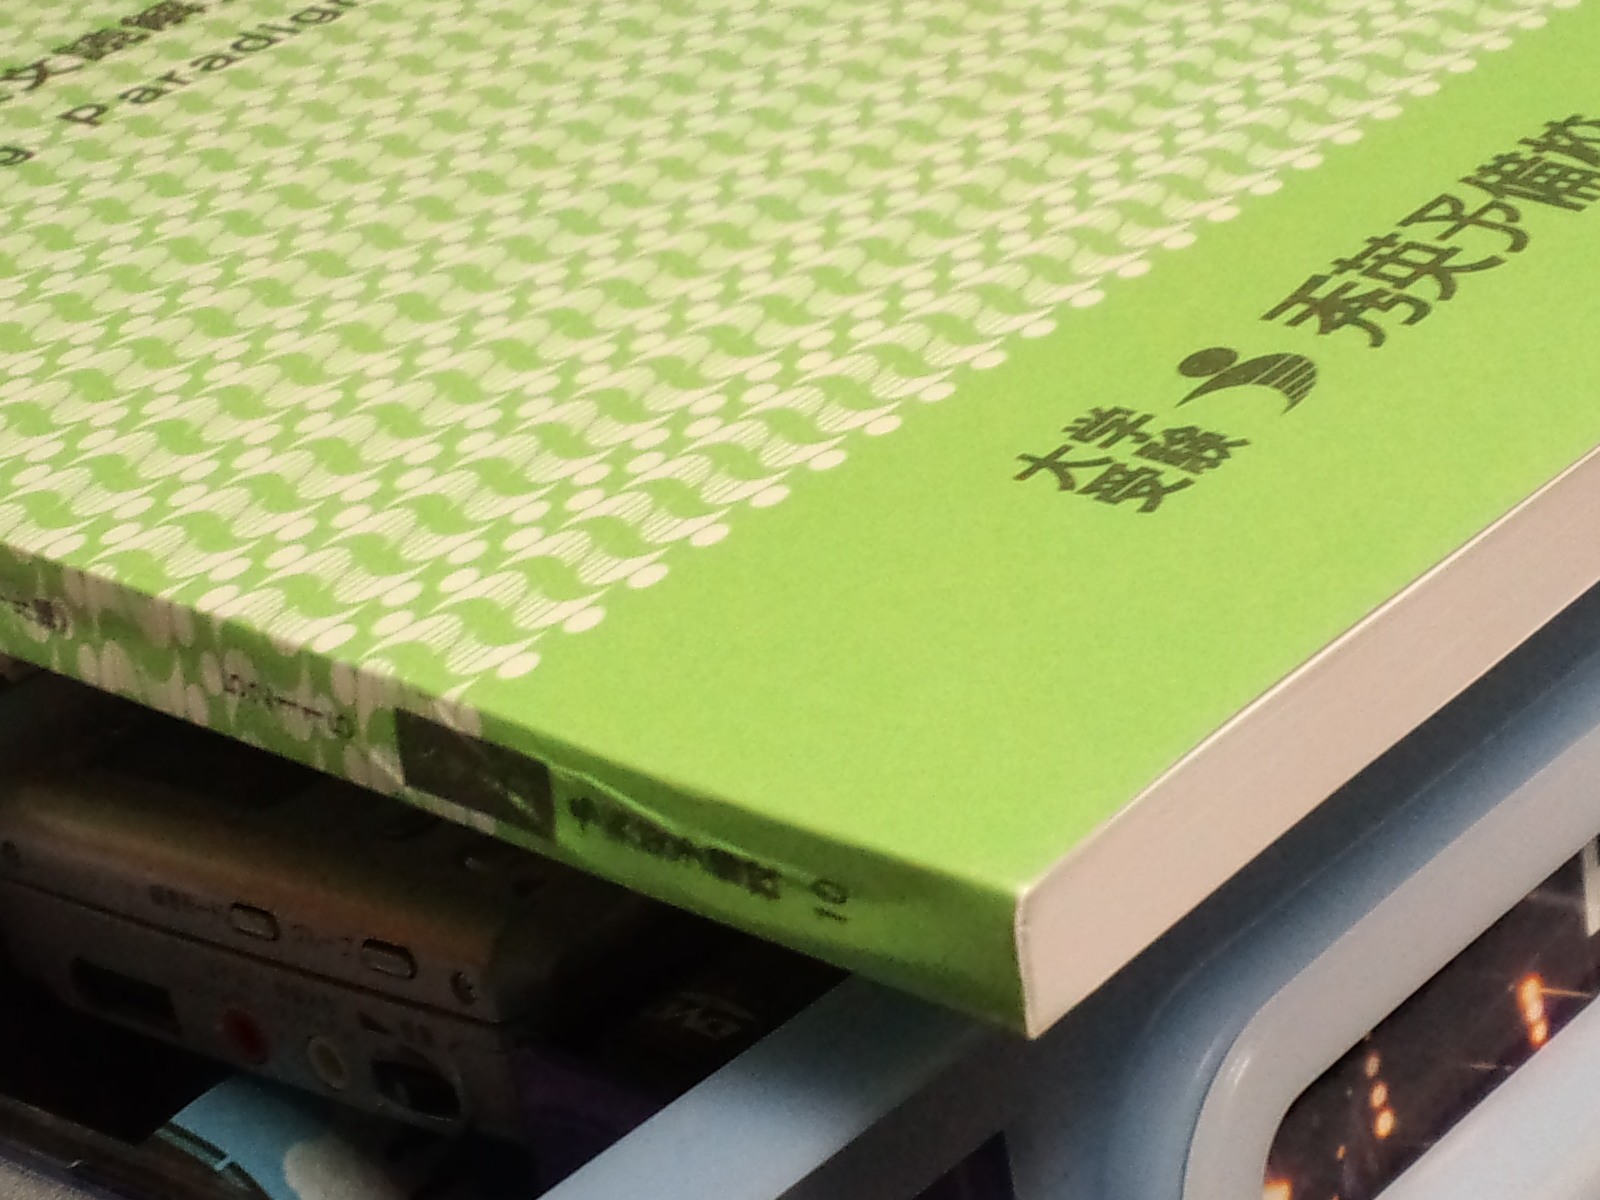 The ultimate textbook!!